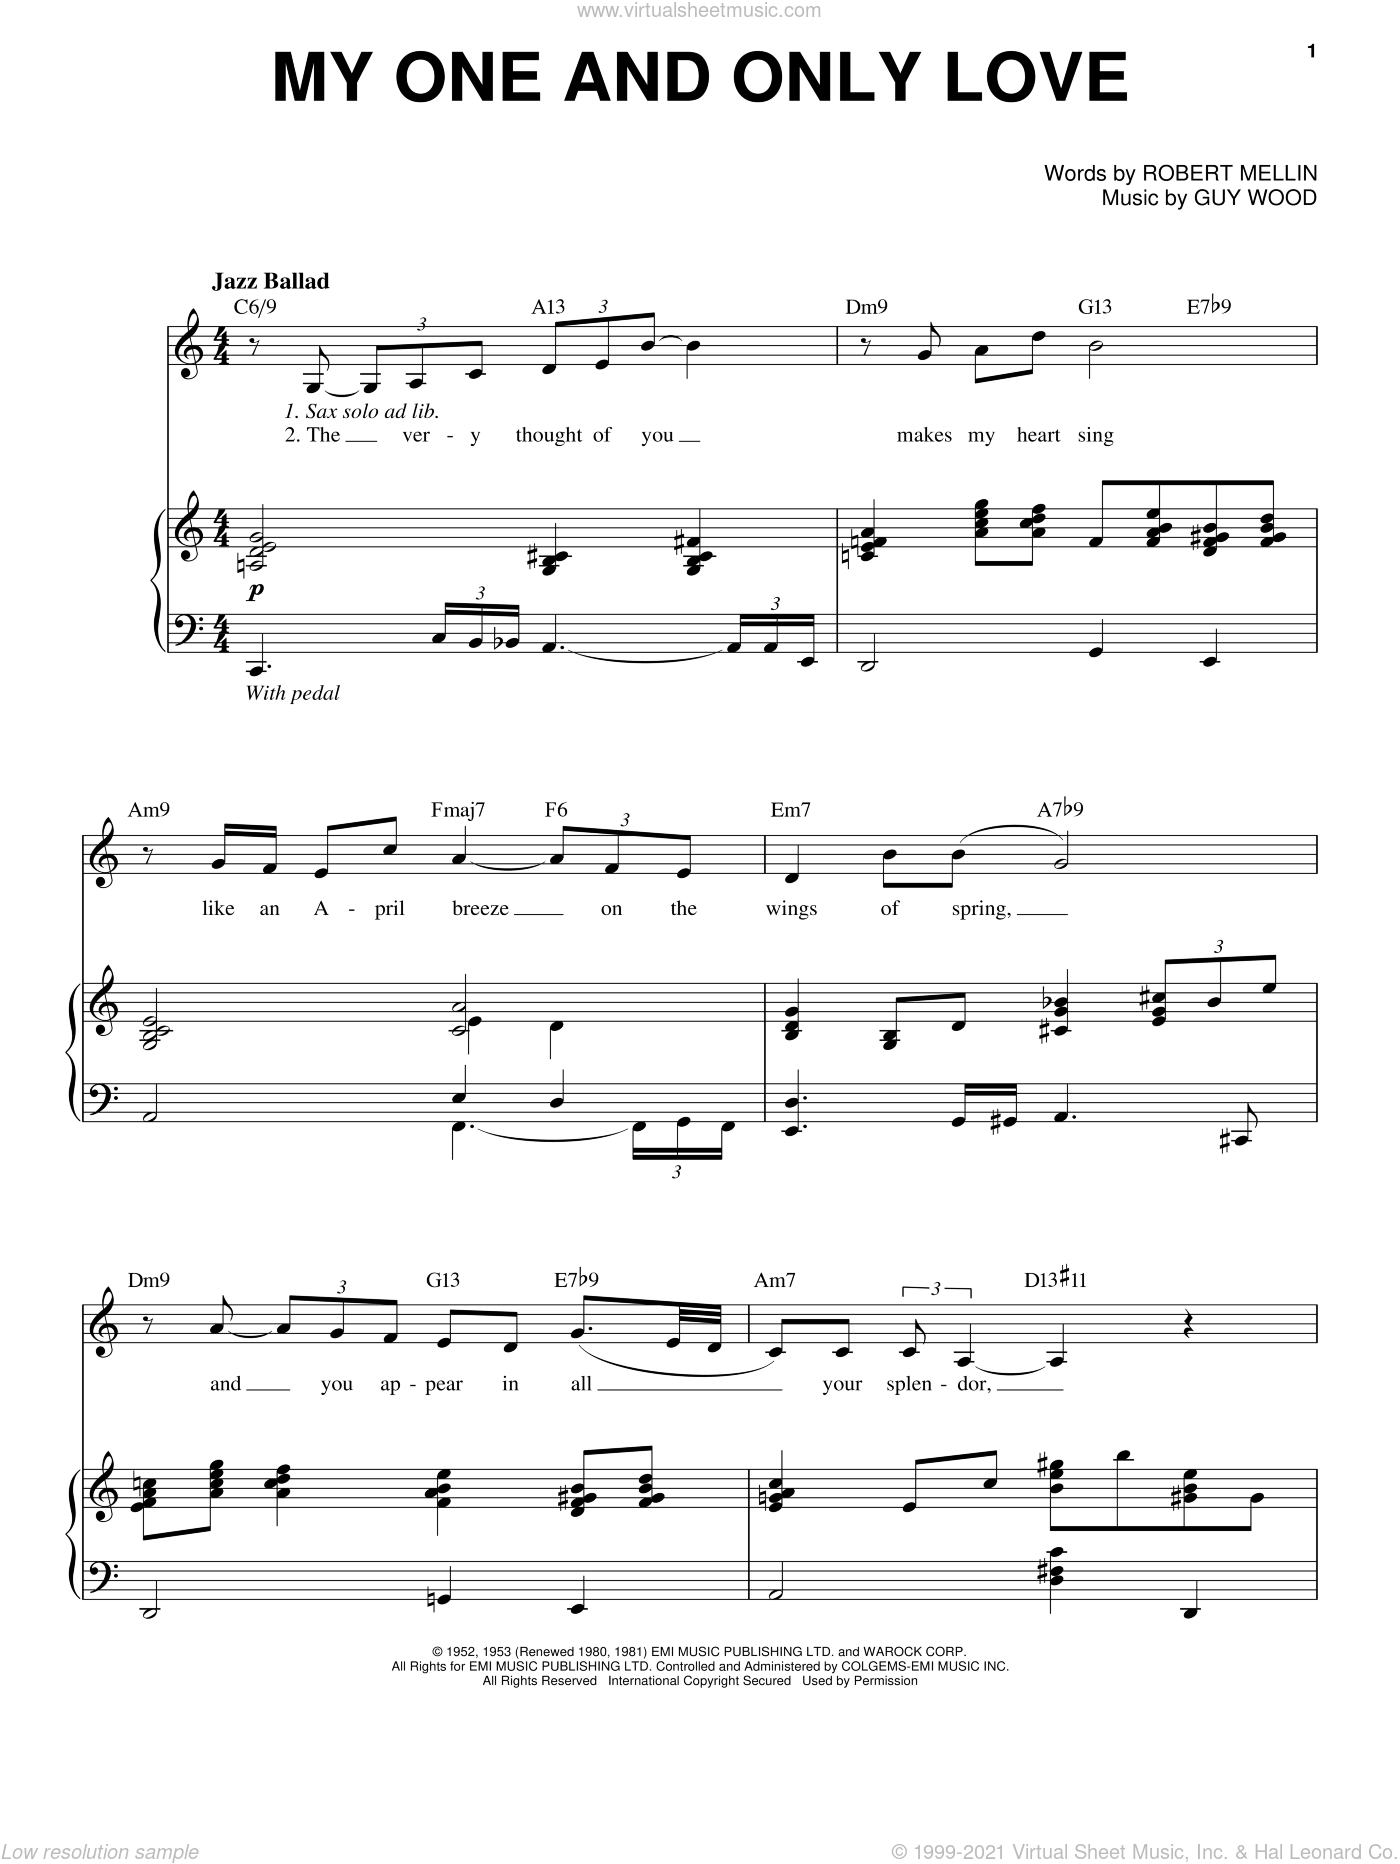 My One And Only Love sheet music for voice and piano by Johnny Hartman, Guy Wood and Robert Mellin, intermediate skill level